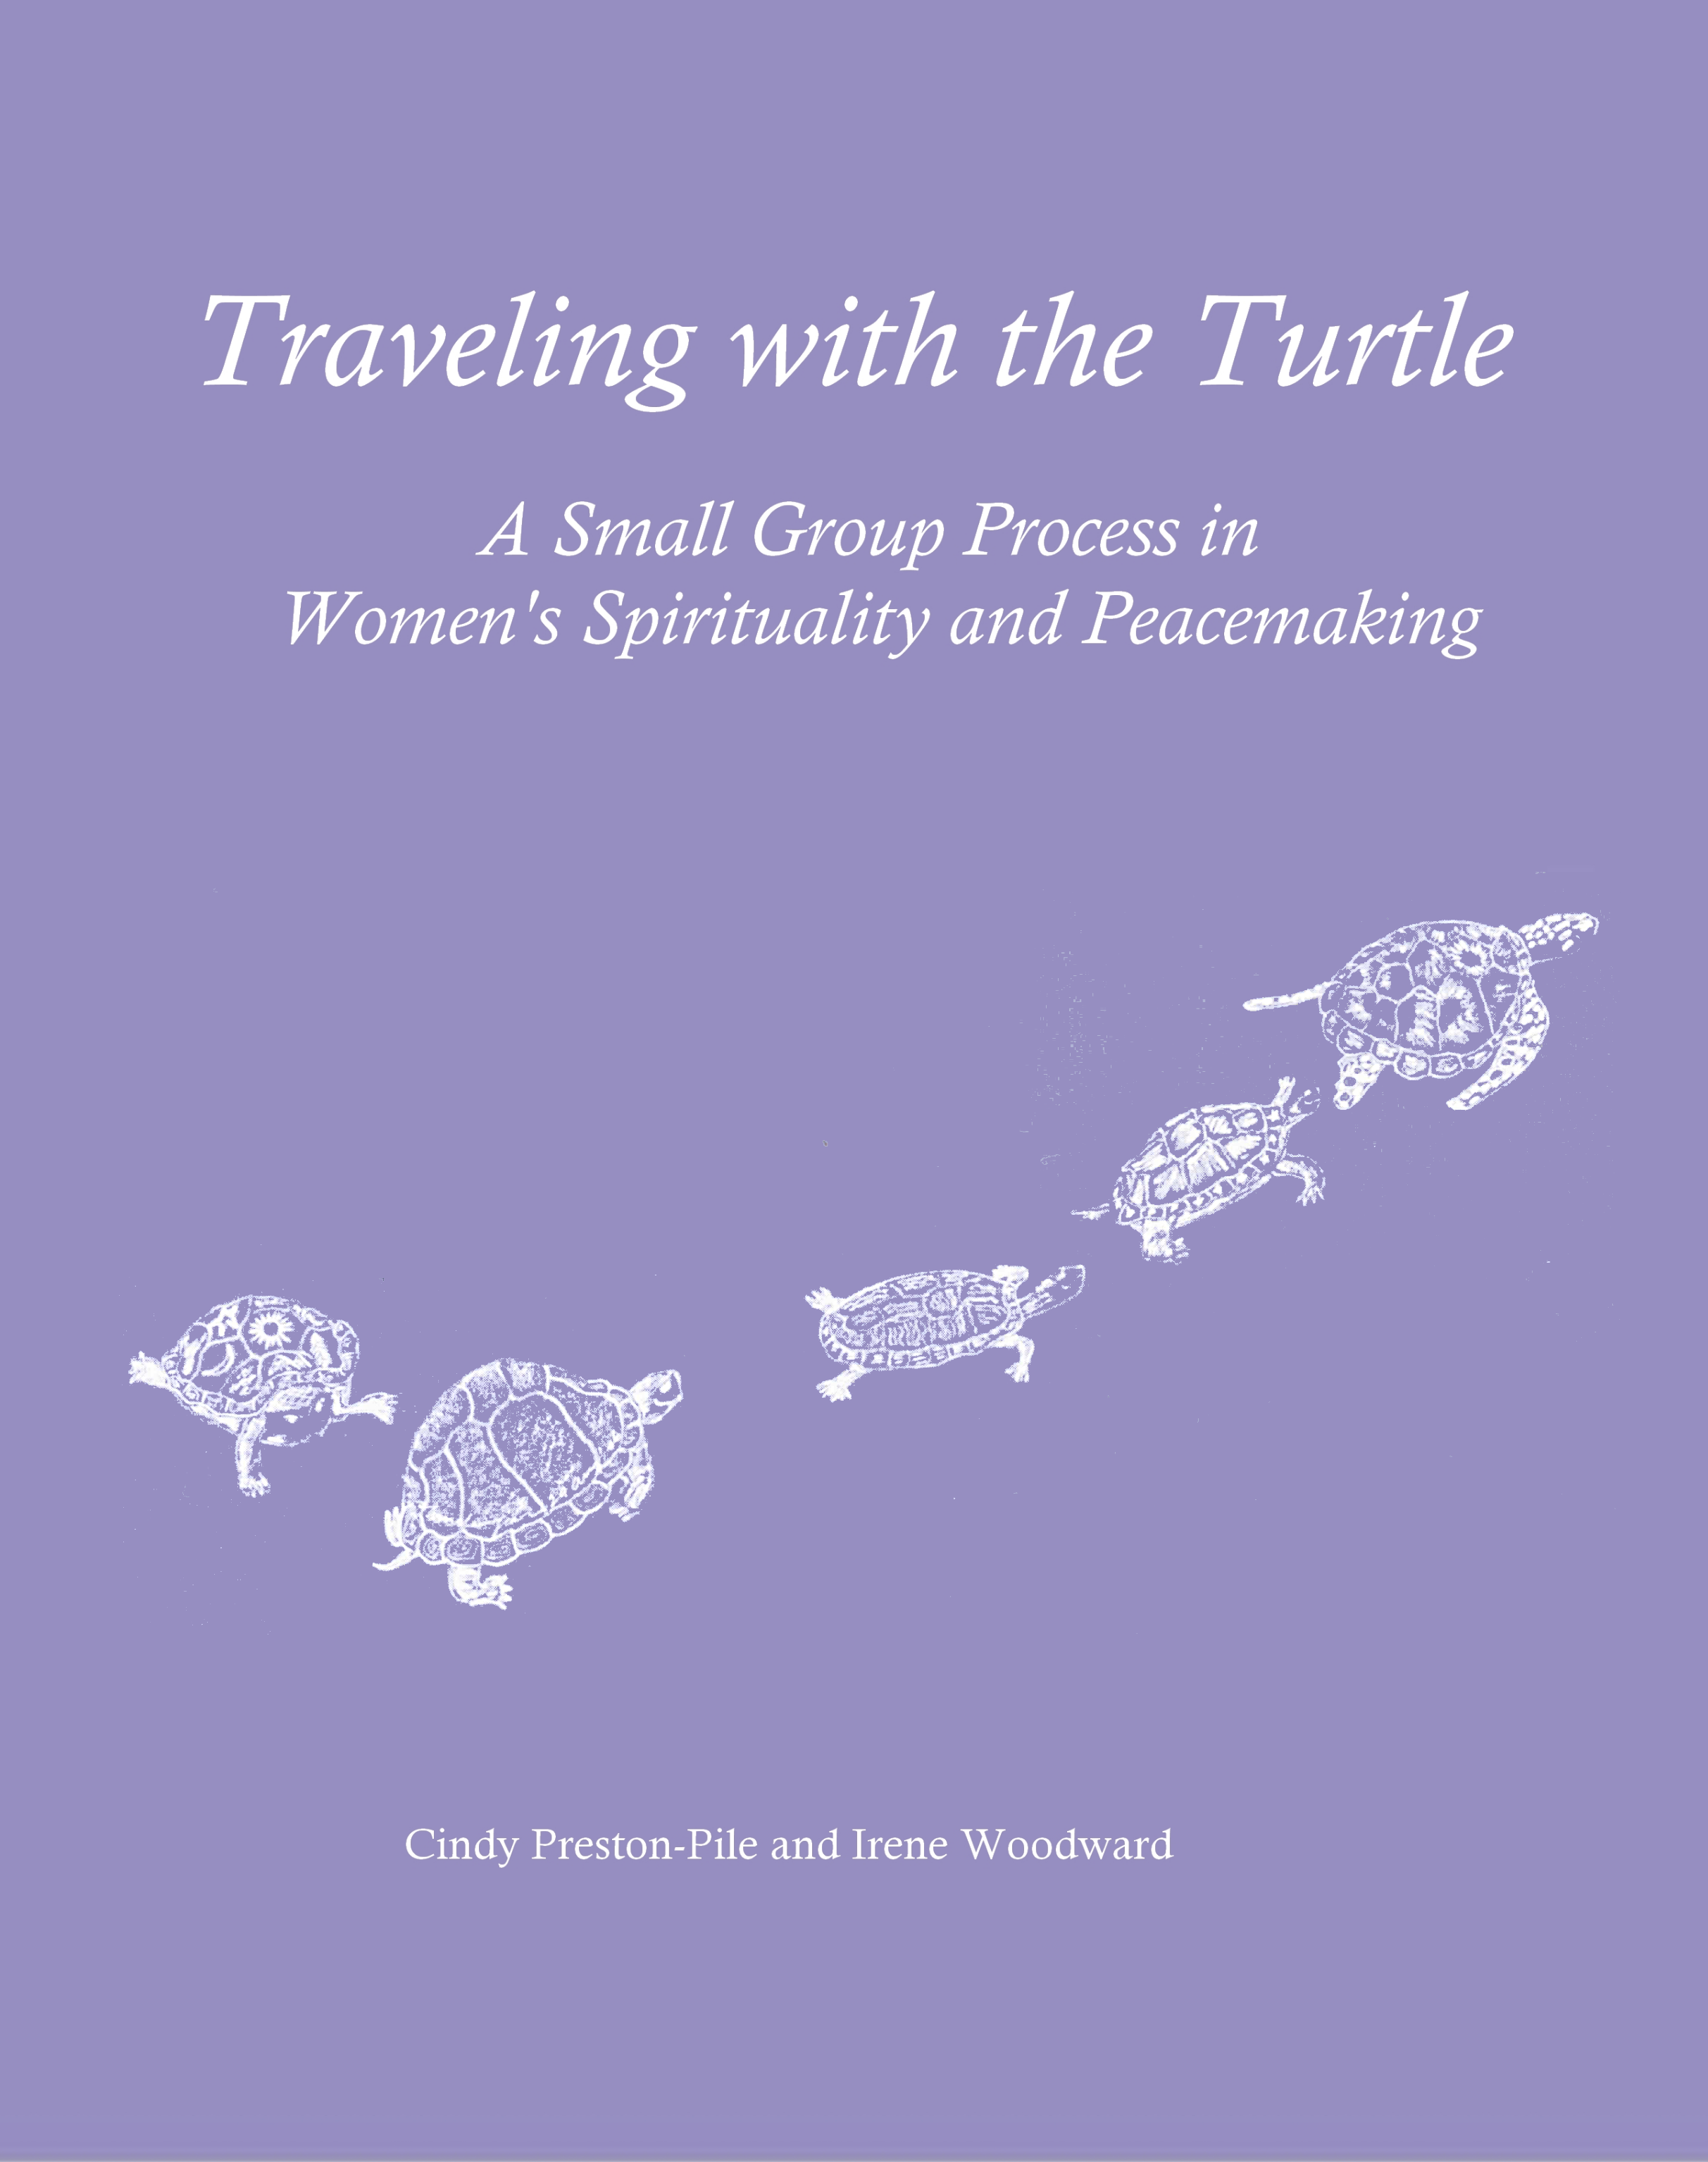 Traveling with the Turtle Front Cover.png